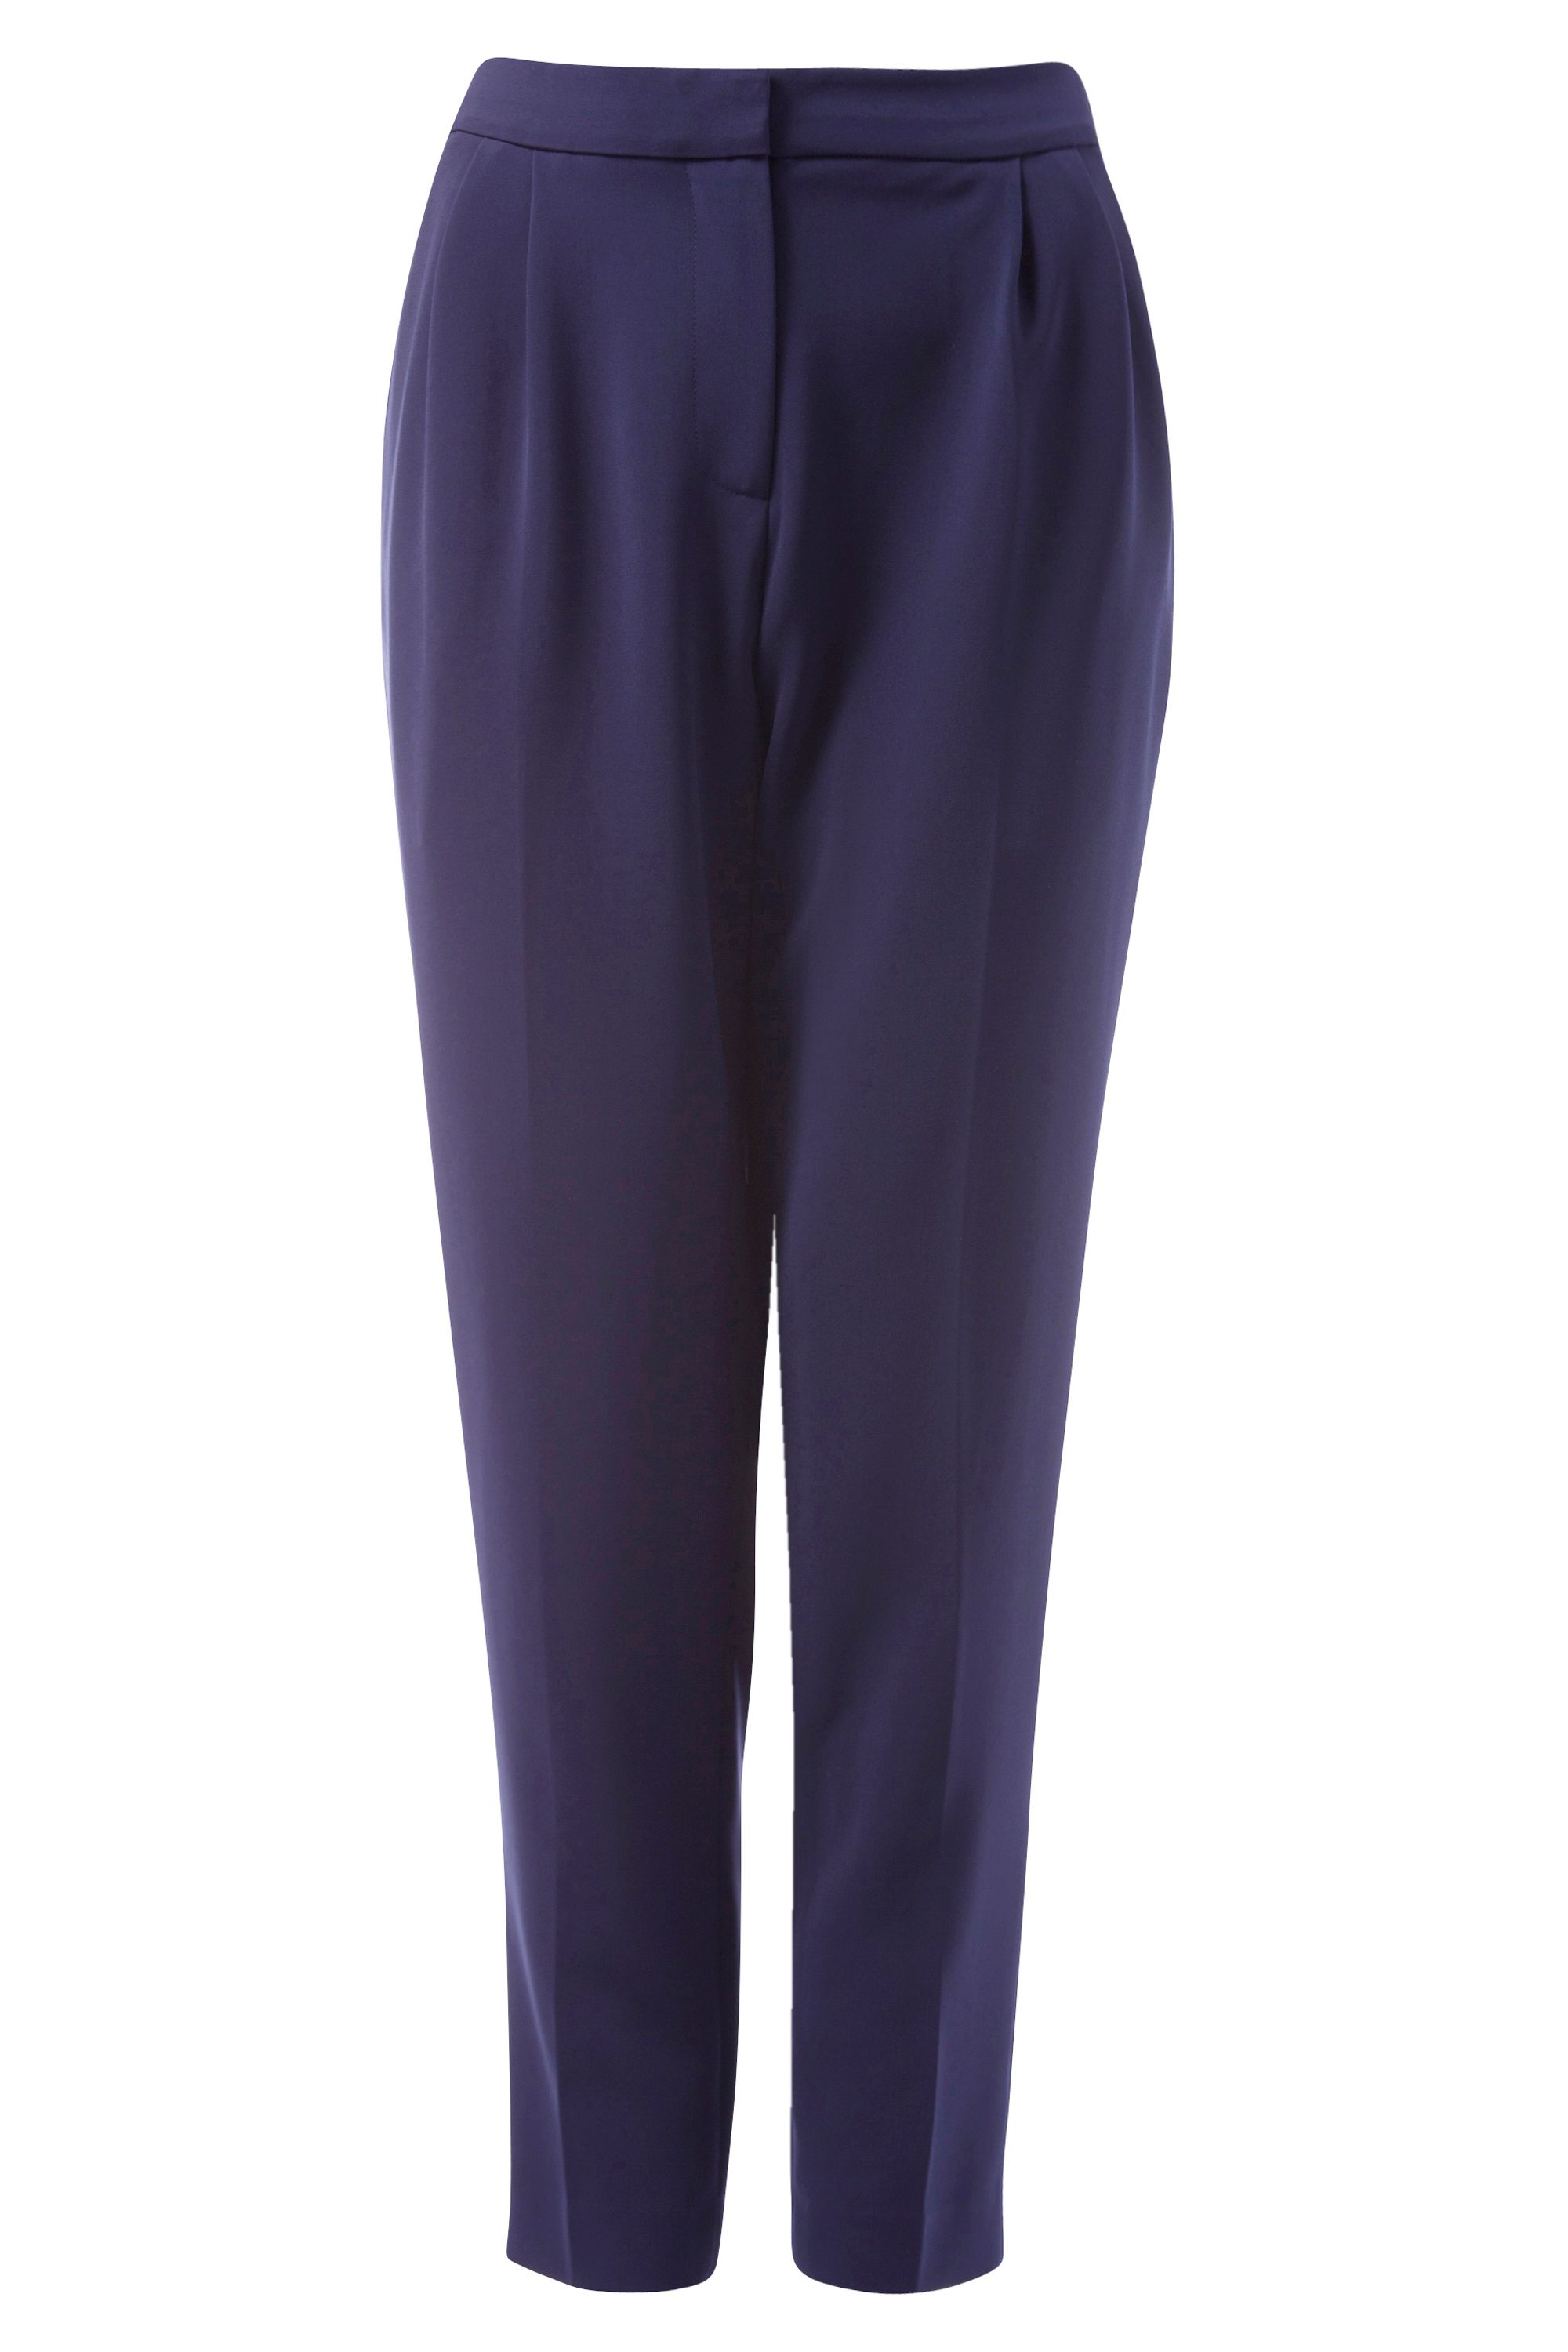 Tommy Hilfiger Jillian Ankle Pant, Blue